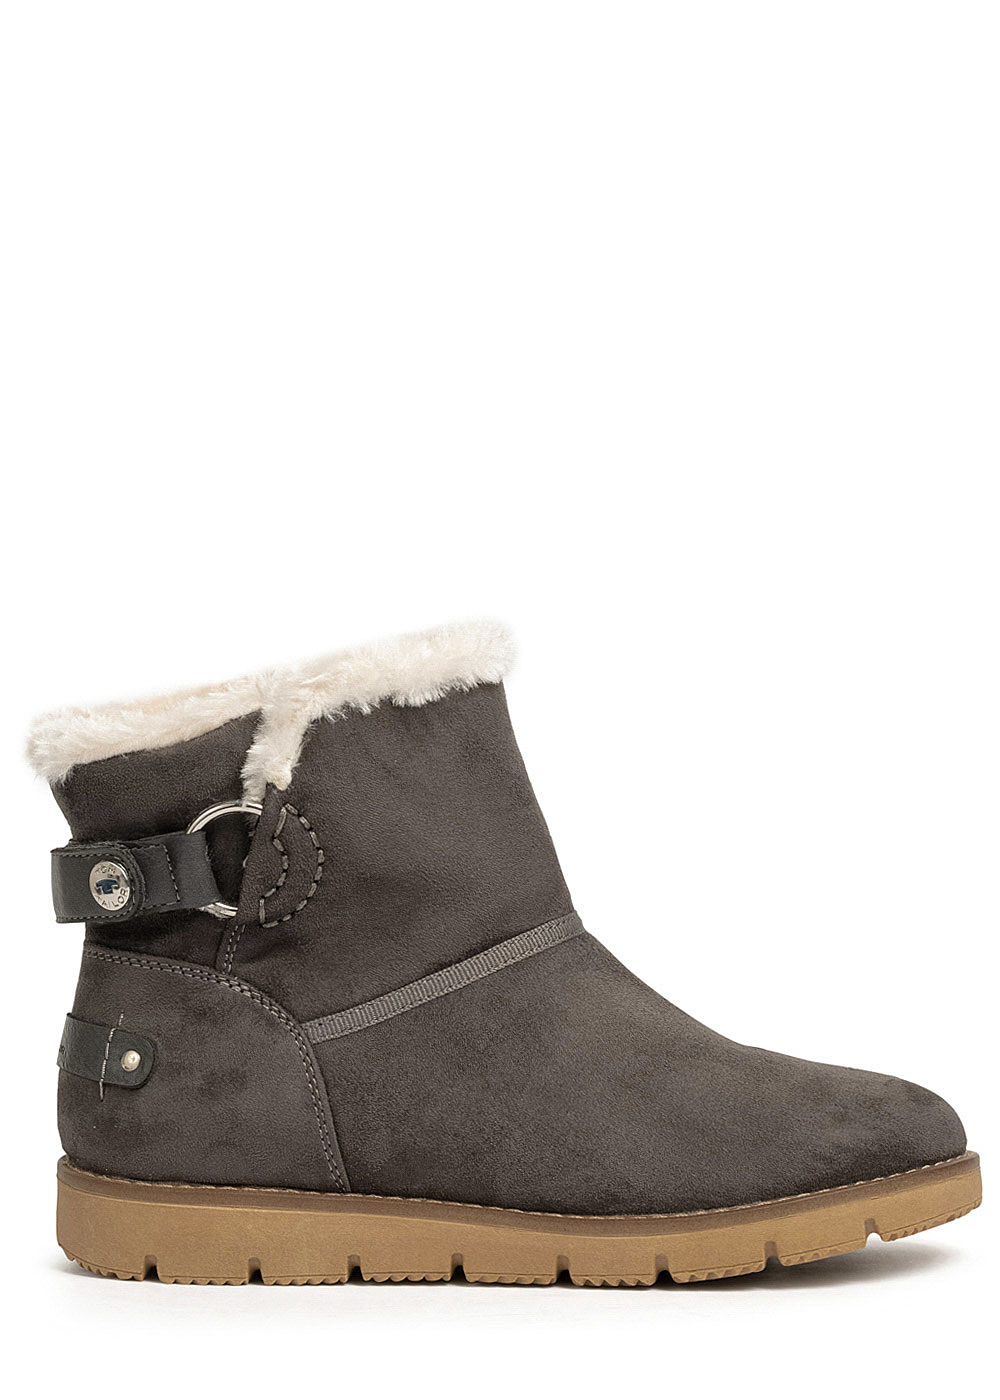 Tom Tailor Damen Schuh Winter Boots Stiefelette Velour-Optik coal grau - Art.-Nr.: 20083867-42-DG